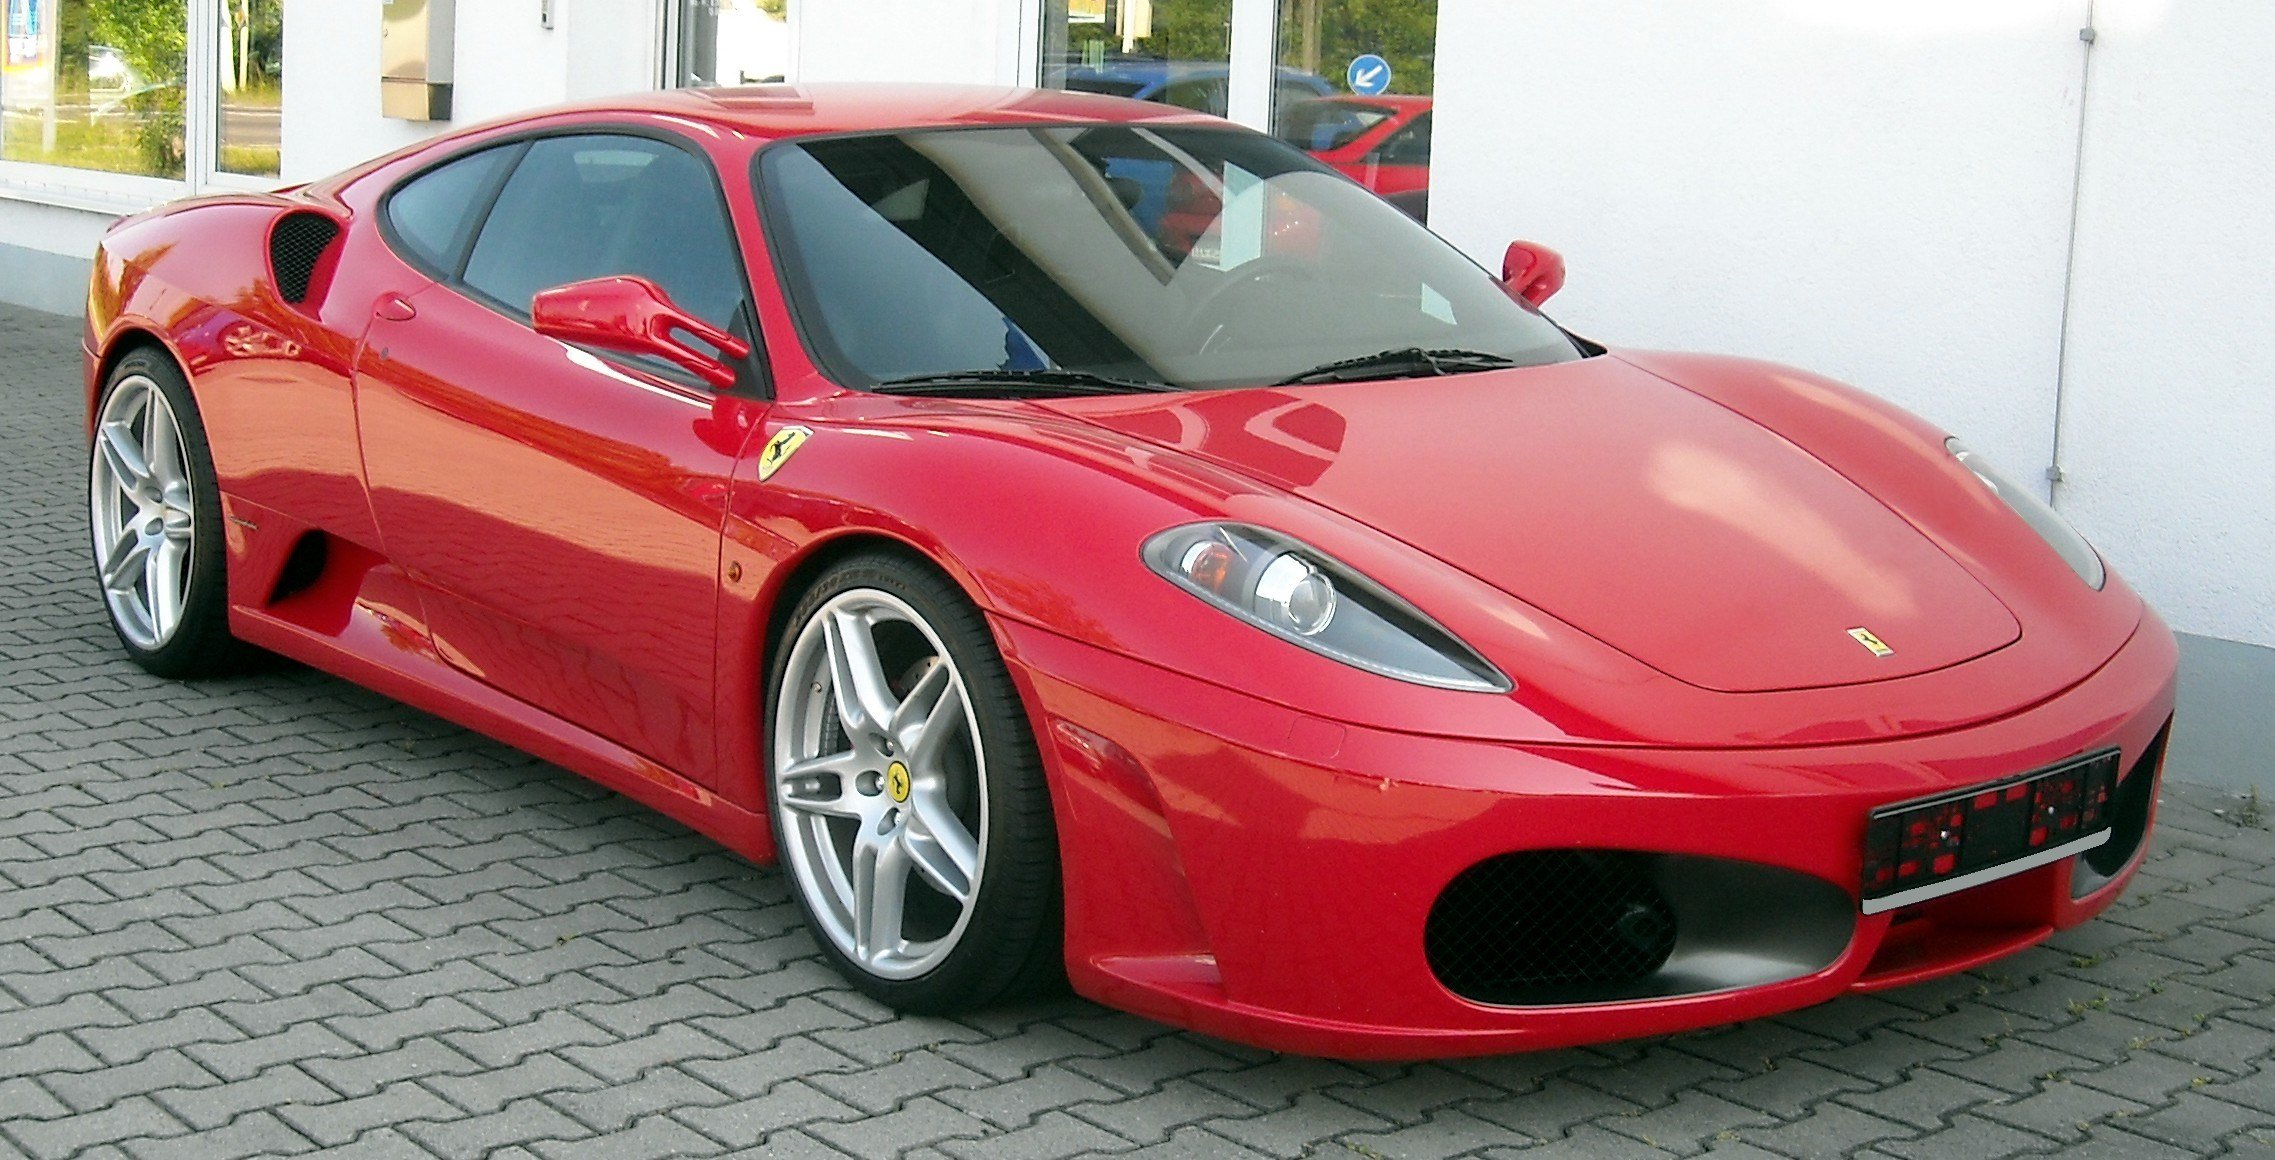 New File Ferrari F430 Front 20080605 Jpg On This Month